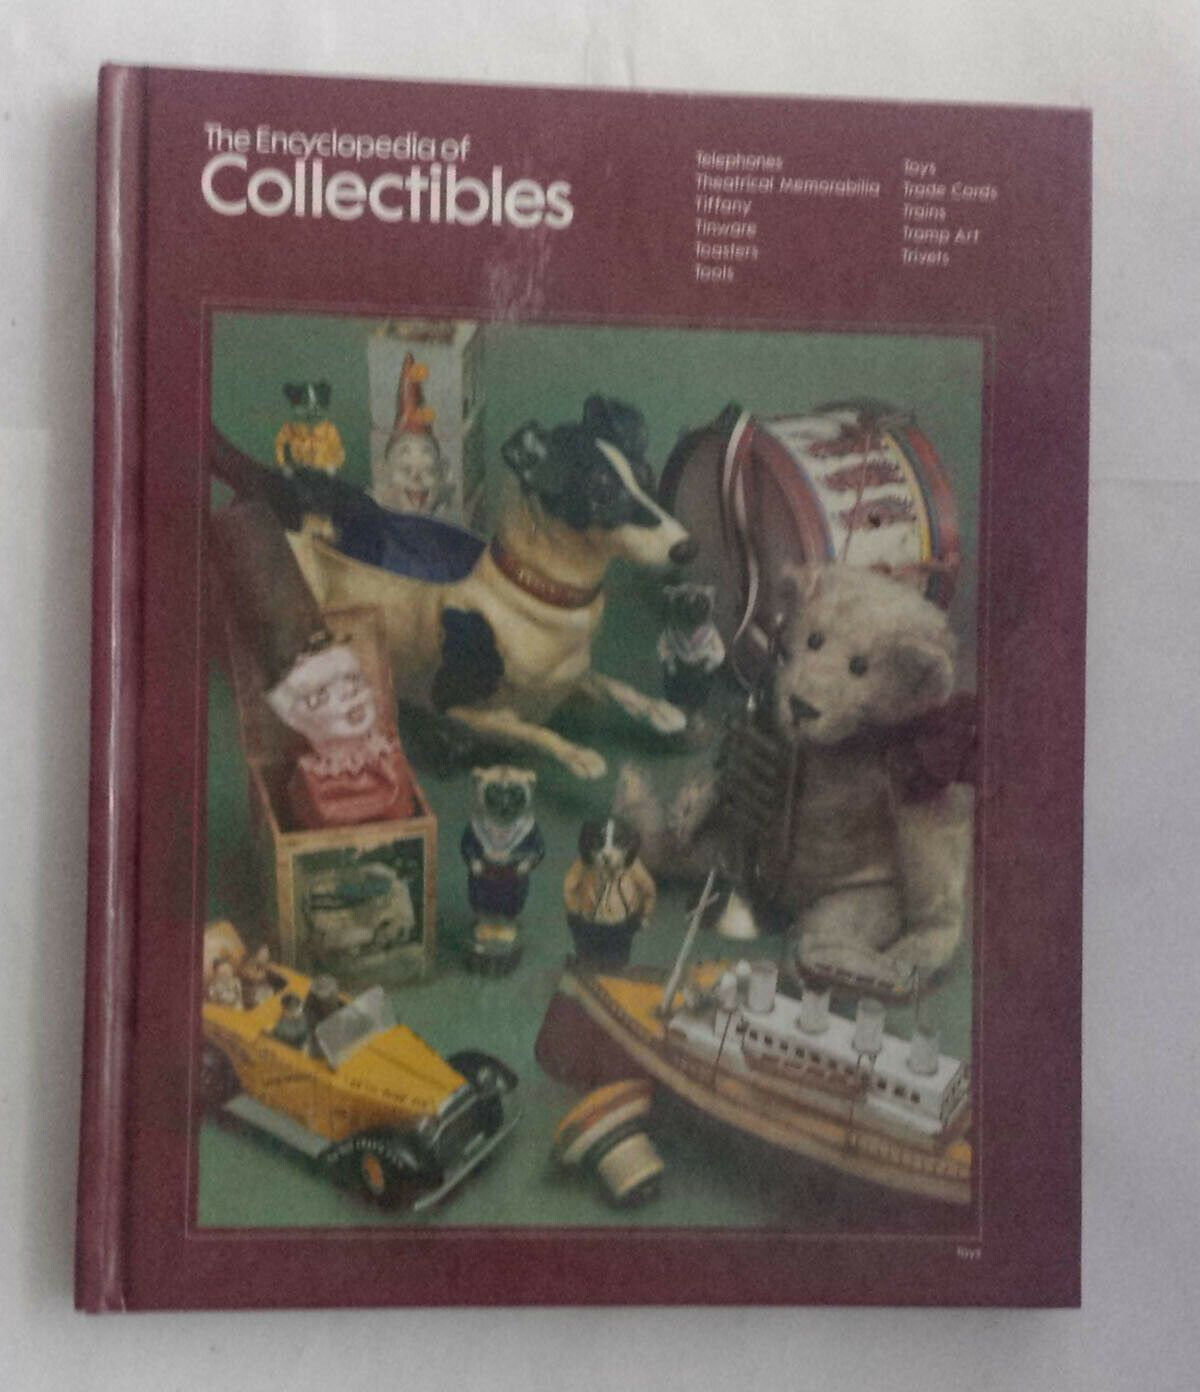 Details about Encyclopedia of Collectibles from Telephones